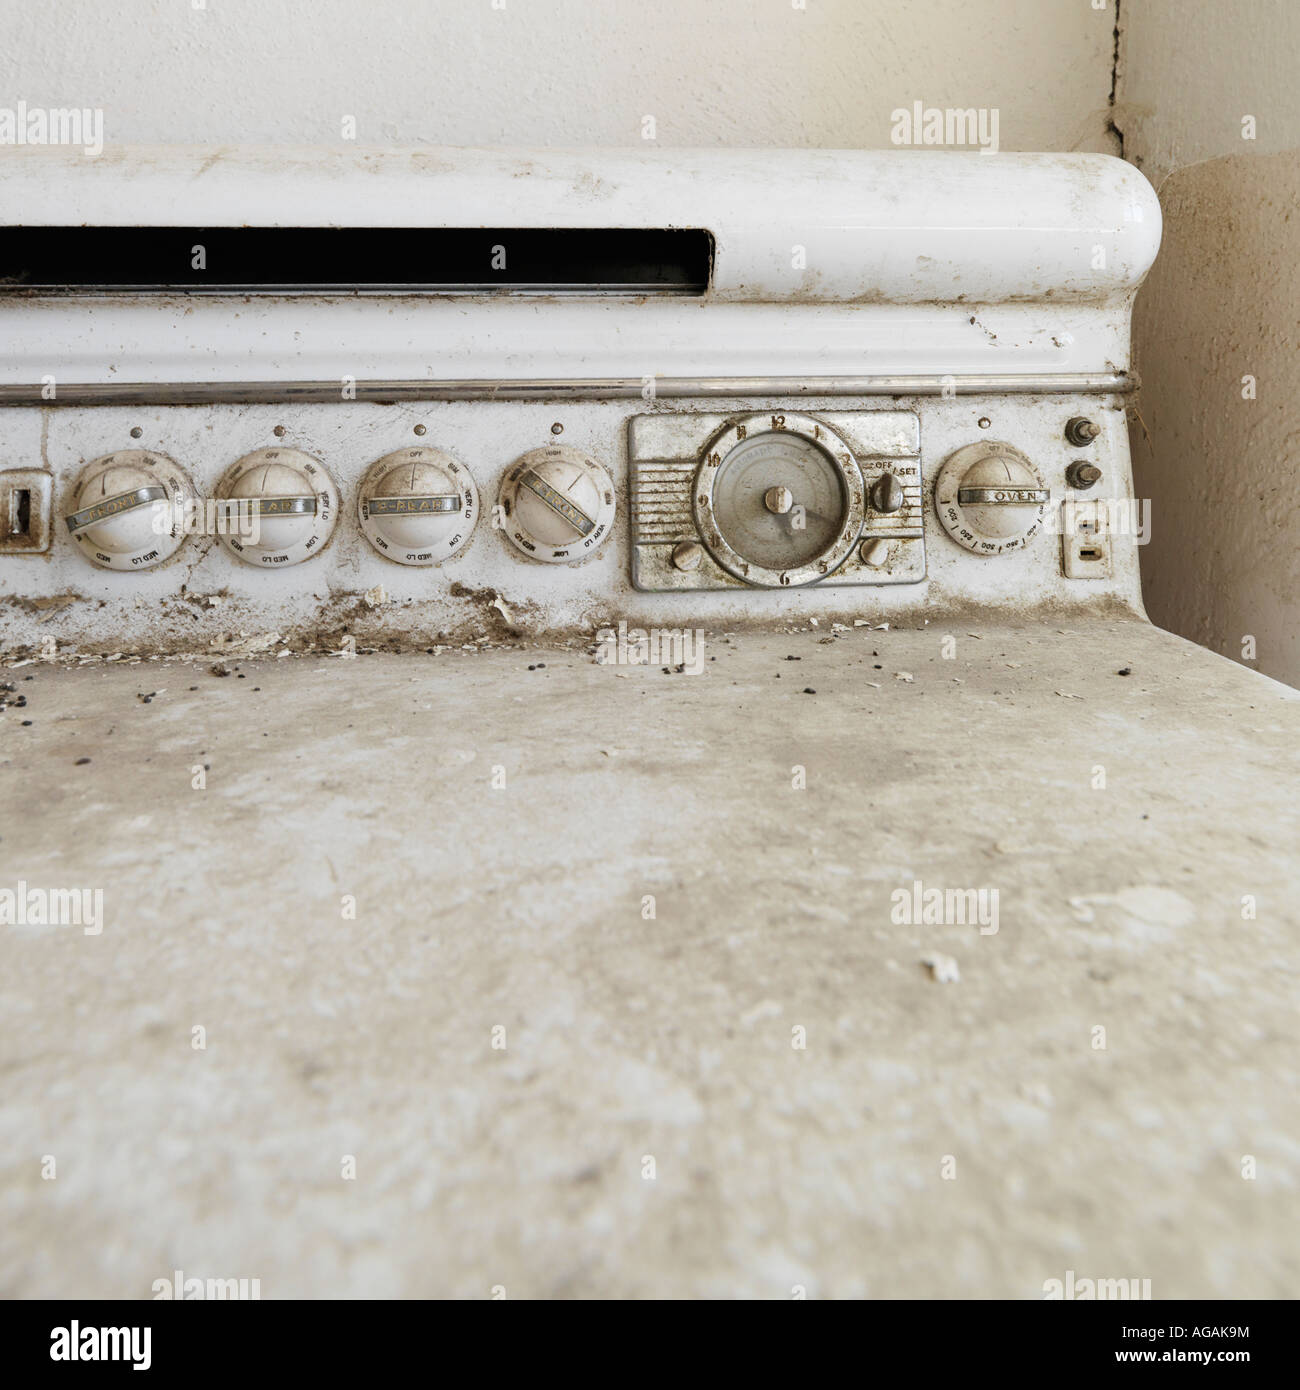 Close up of dirty old antique stove - Stock Image